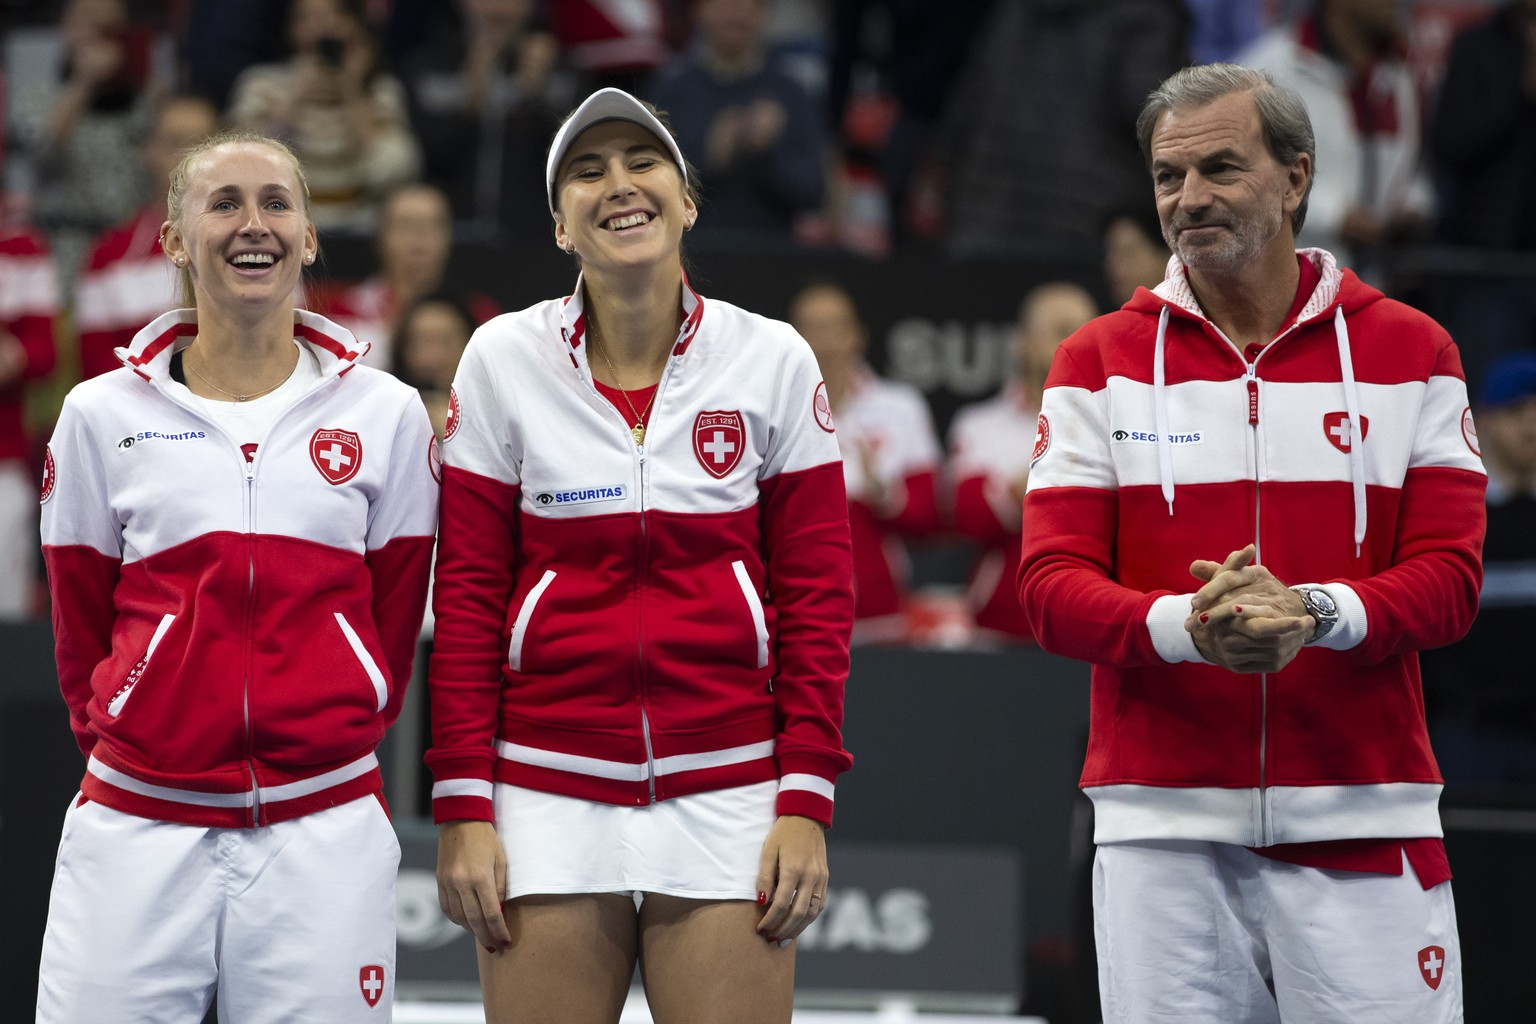 Switzerland's players Jil Teichmann, Belinda Bencic and team captain Heinz Guenthardt, from left, during the team presentation at the Fed Cup qualifier between Switzerland and Canada in the Swiss Tennis Arena in Biel, Switzerland, February 8, 2020.(KEYSTONE/Peter Klaunzer)